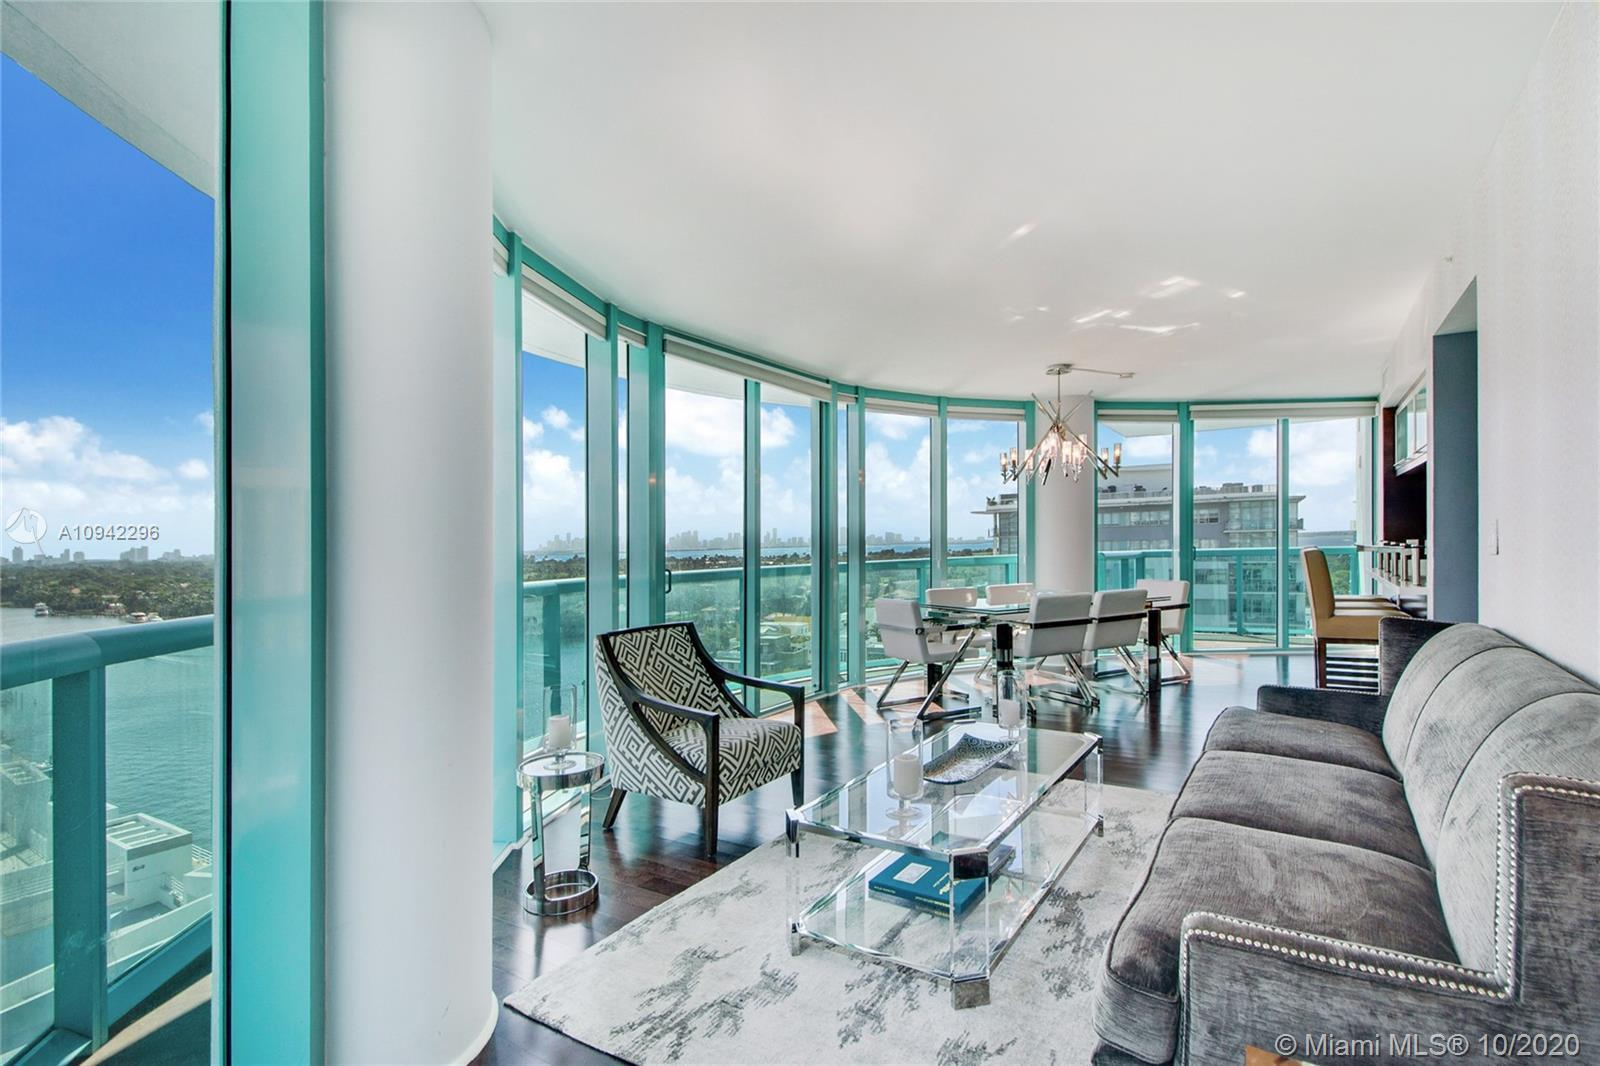 This elegant condo is fully illuminated by natural light and panoramic views of the intracoastal and